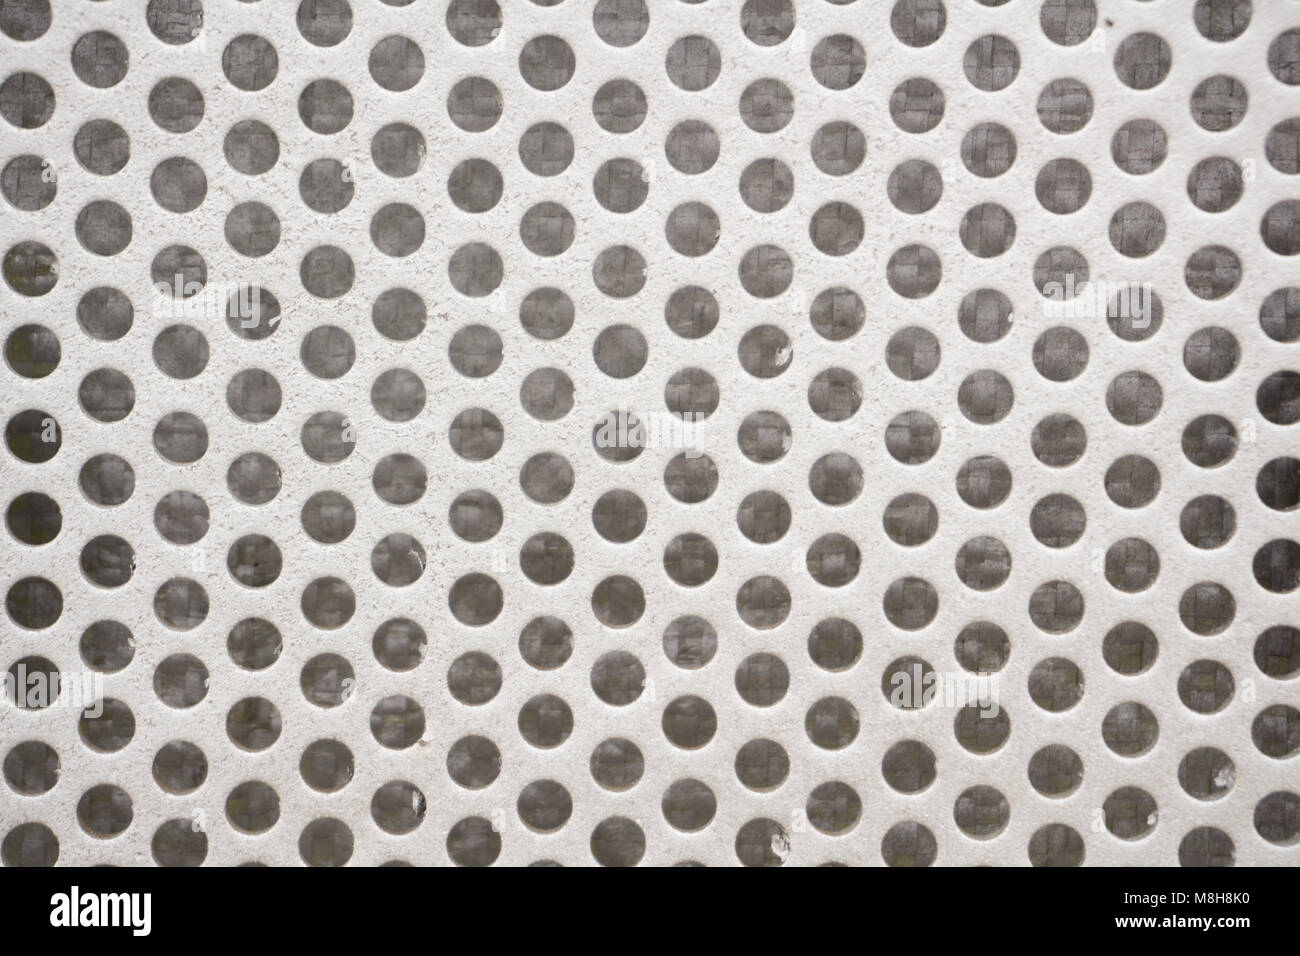 Perforated Pattern Stock Photos Amp Perforated Pattern Stock